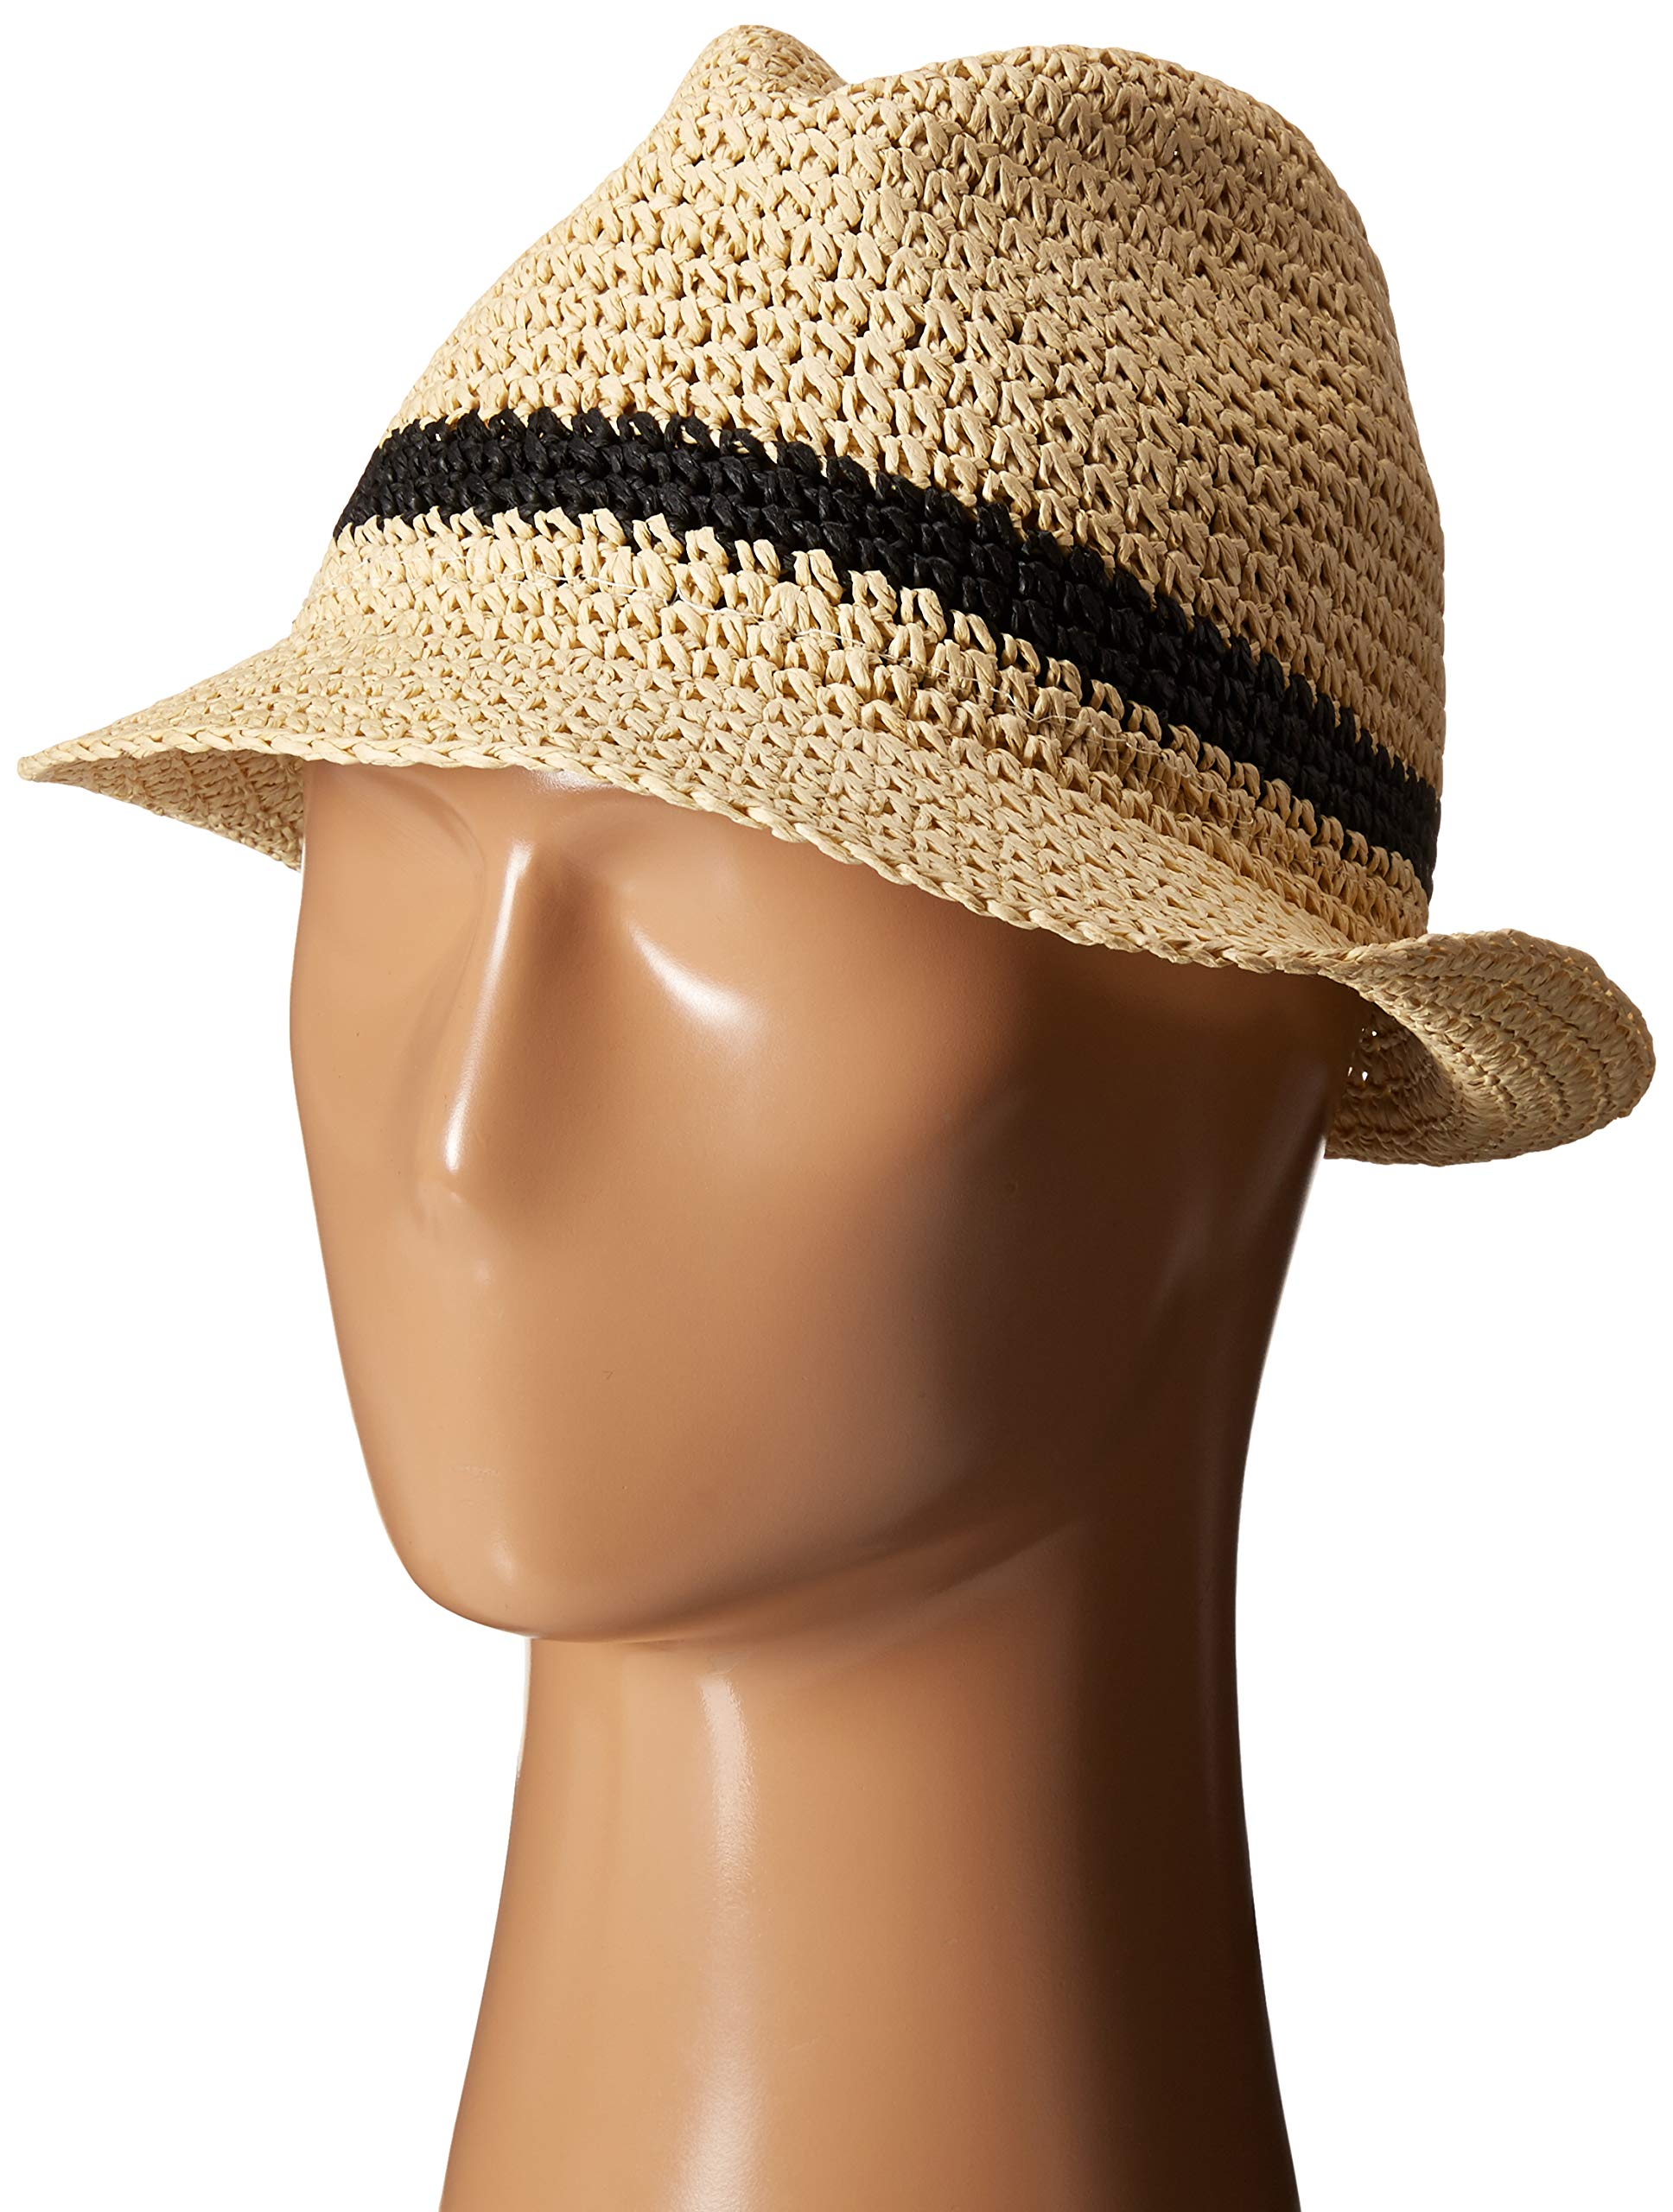 Kate Spade New York Women's Crochet Packable Fedora Natural/Black One Size by Kate Spade New York (Image #1)